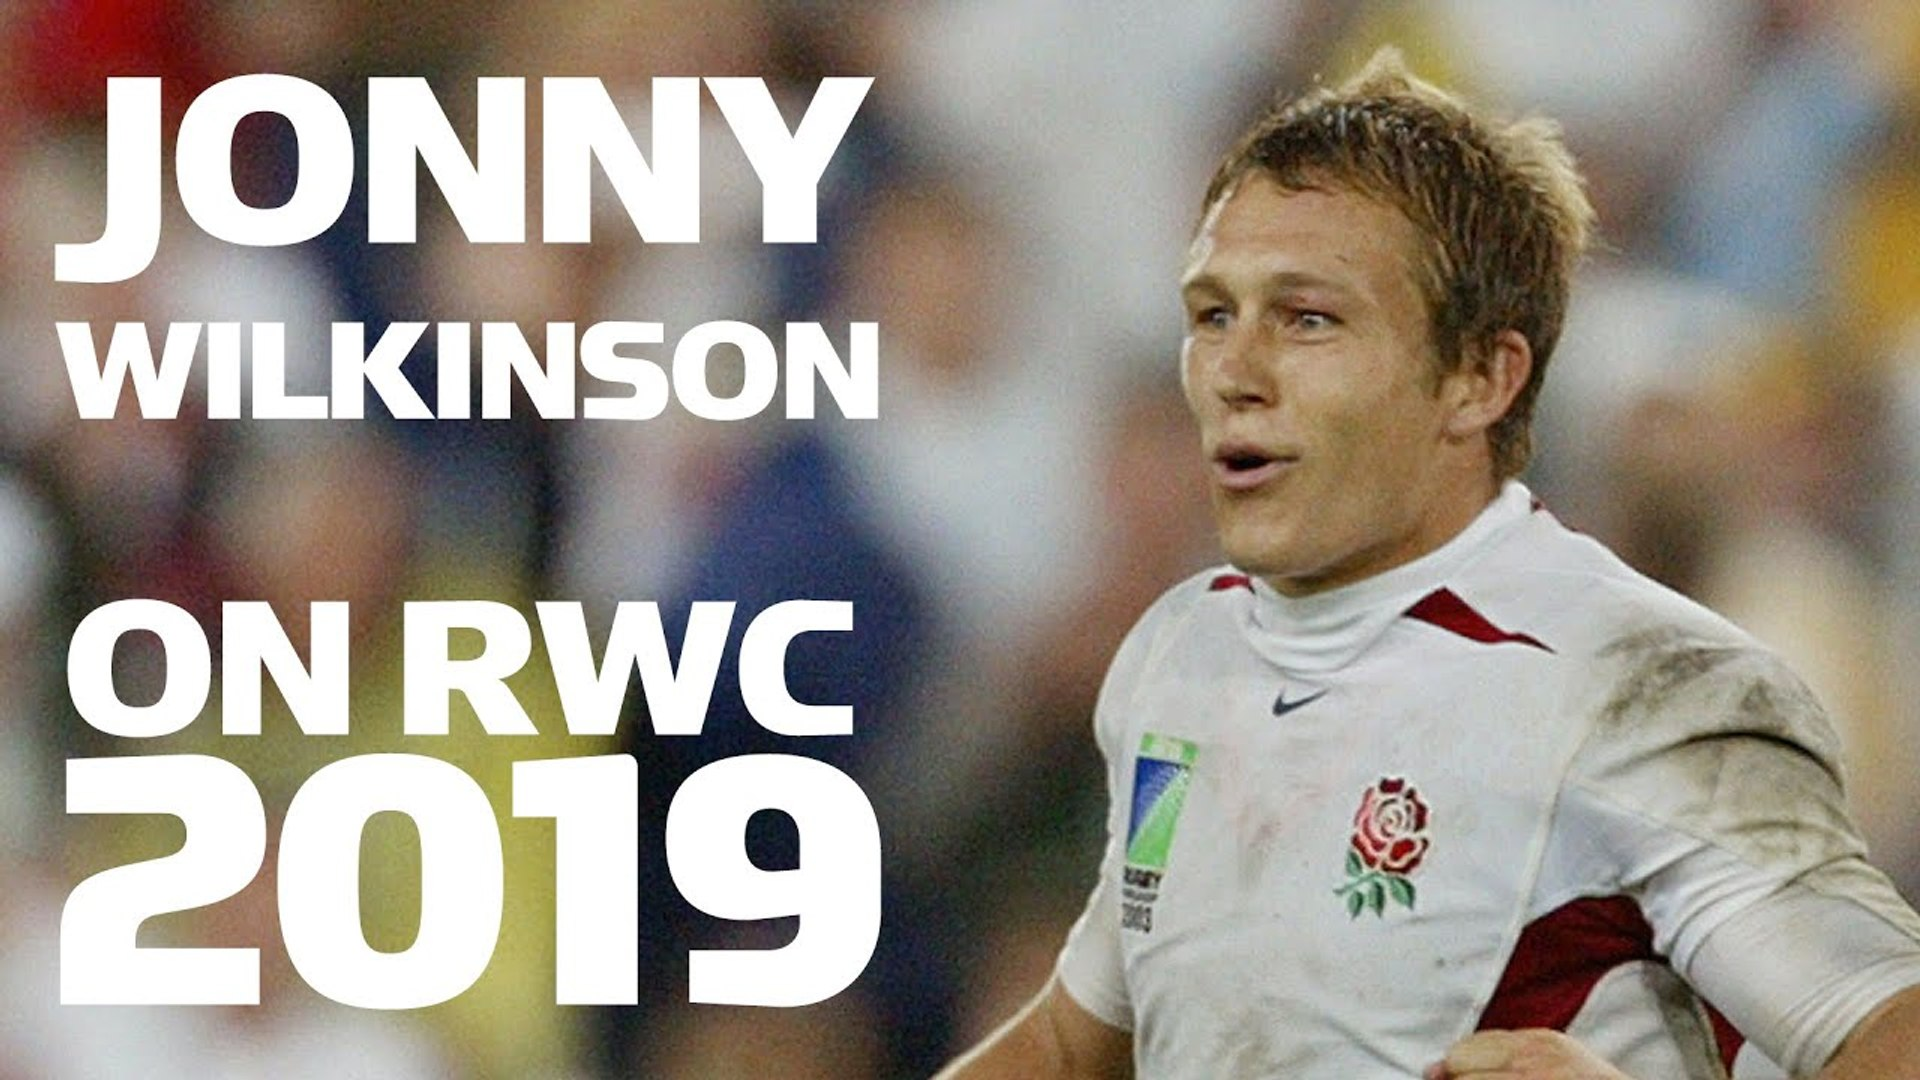 Jonny Wilkinson's Rugby World Cup predictions